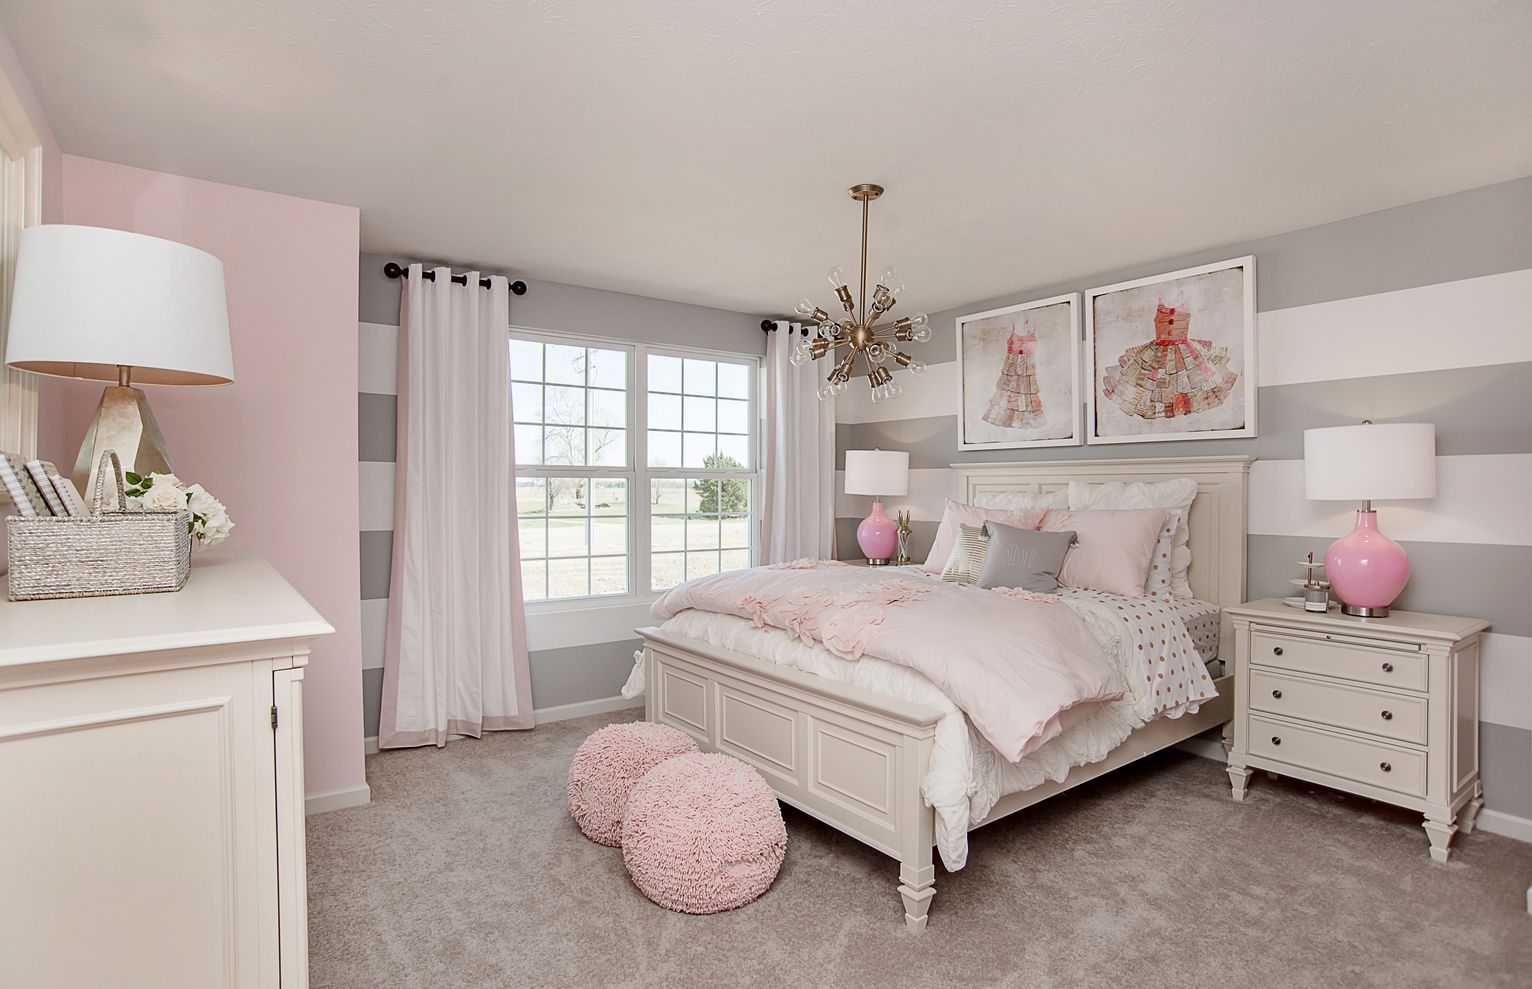 69 cute apartment bedroom ideas you will love round decor for Cute bedroom themes